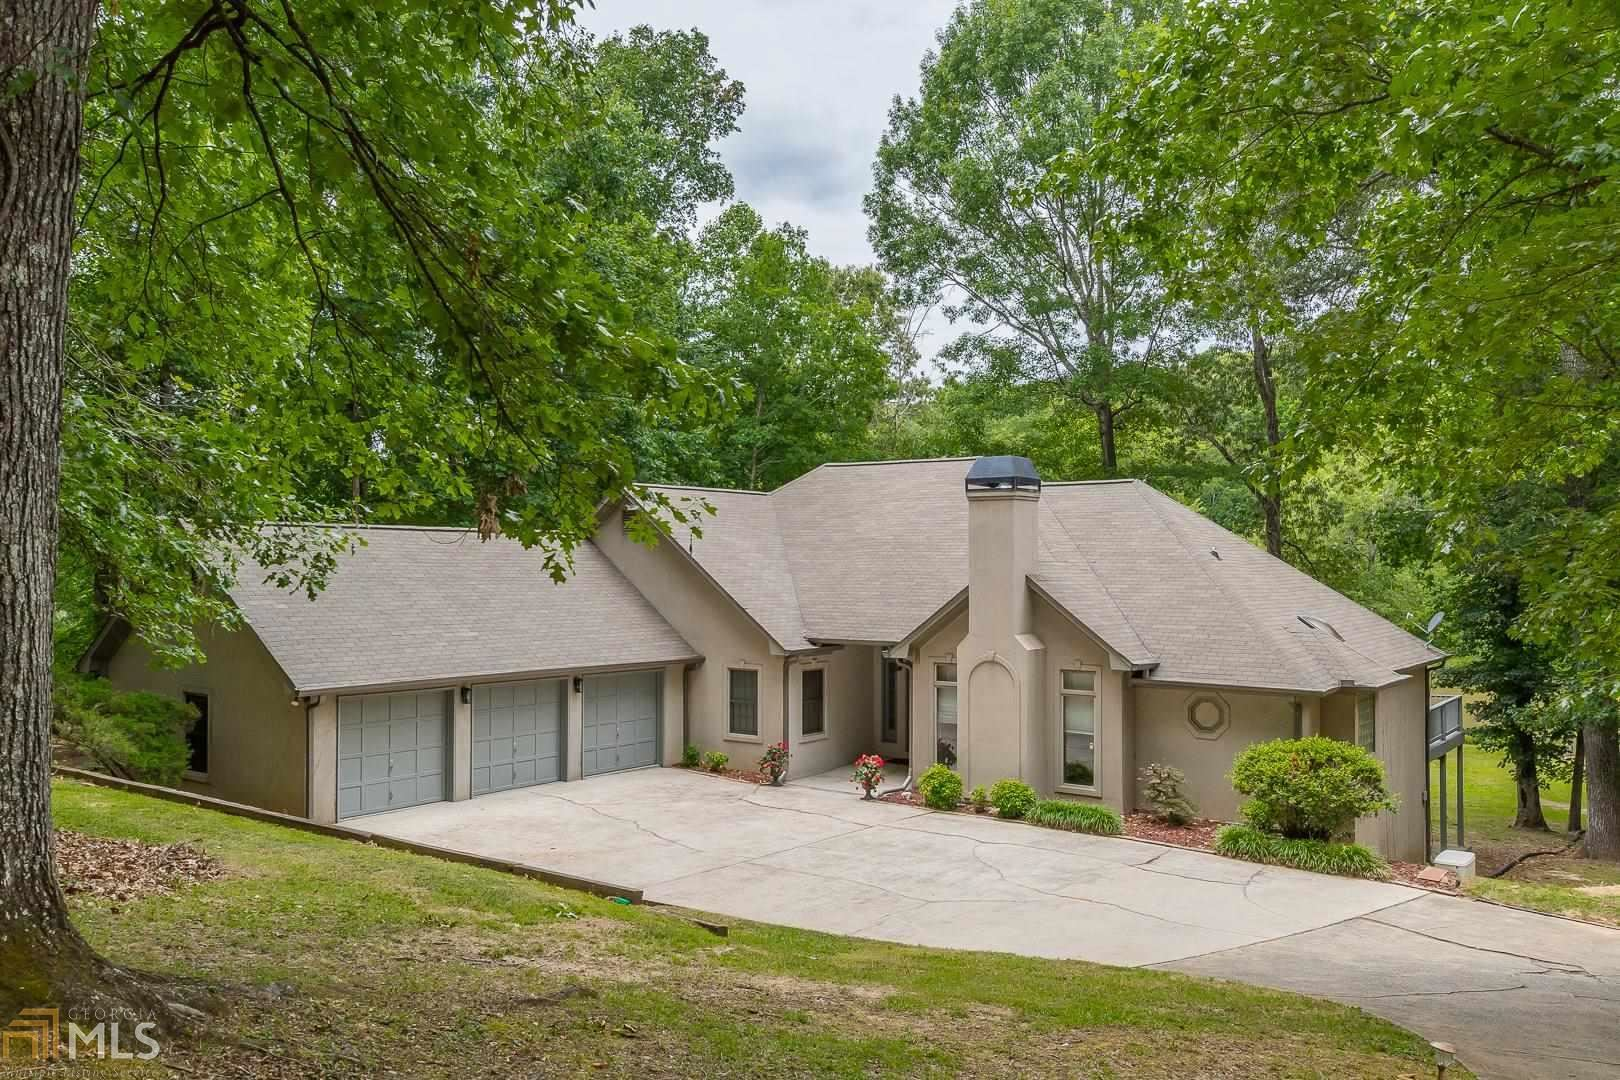 285 Old Mill Ct, Fayetteville, GA 30214 - #: 8992948